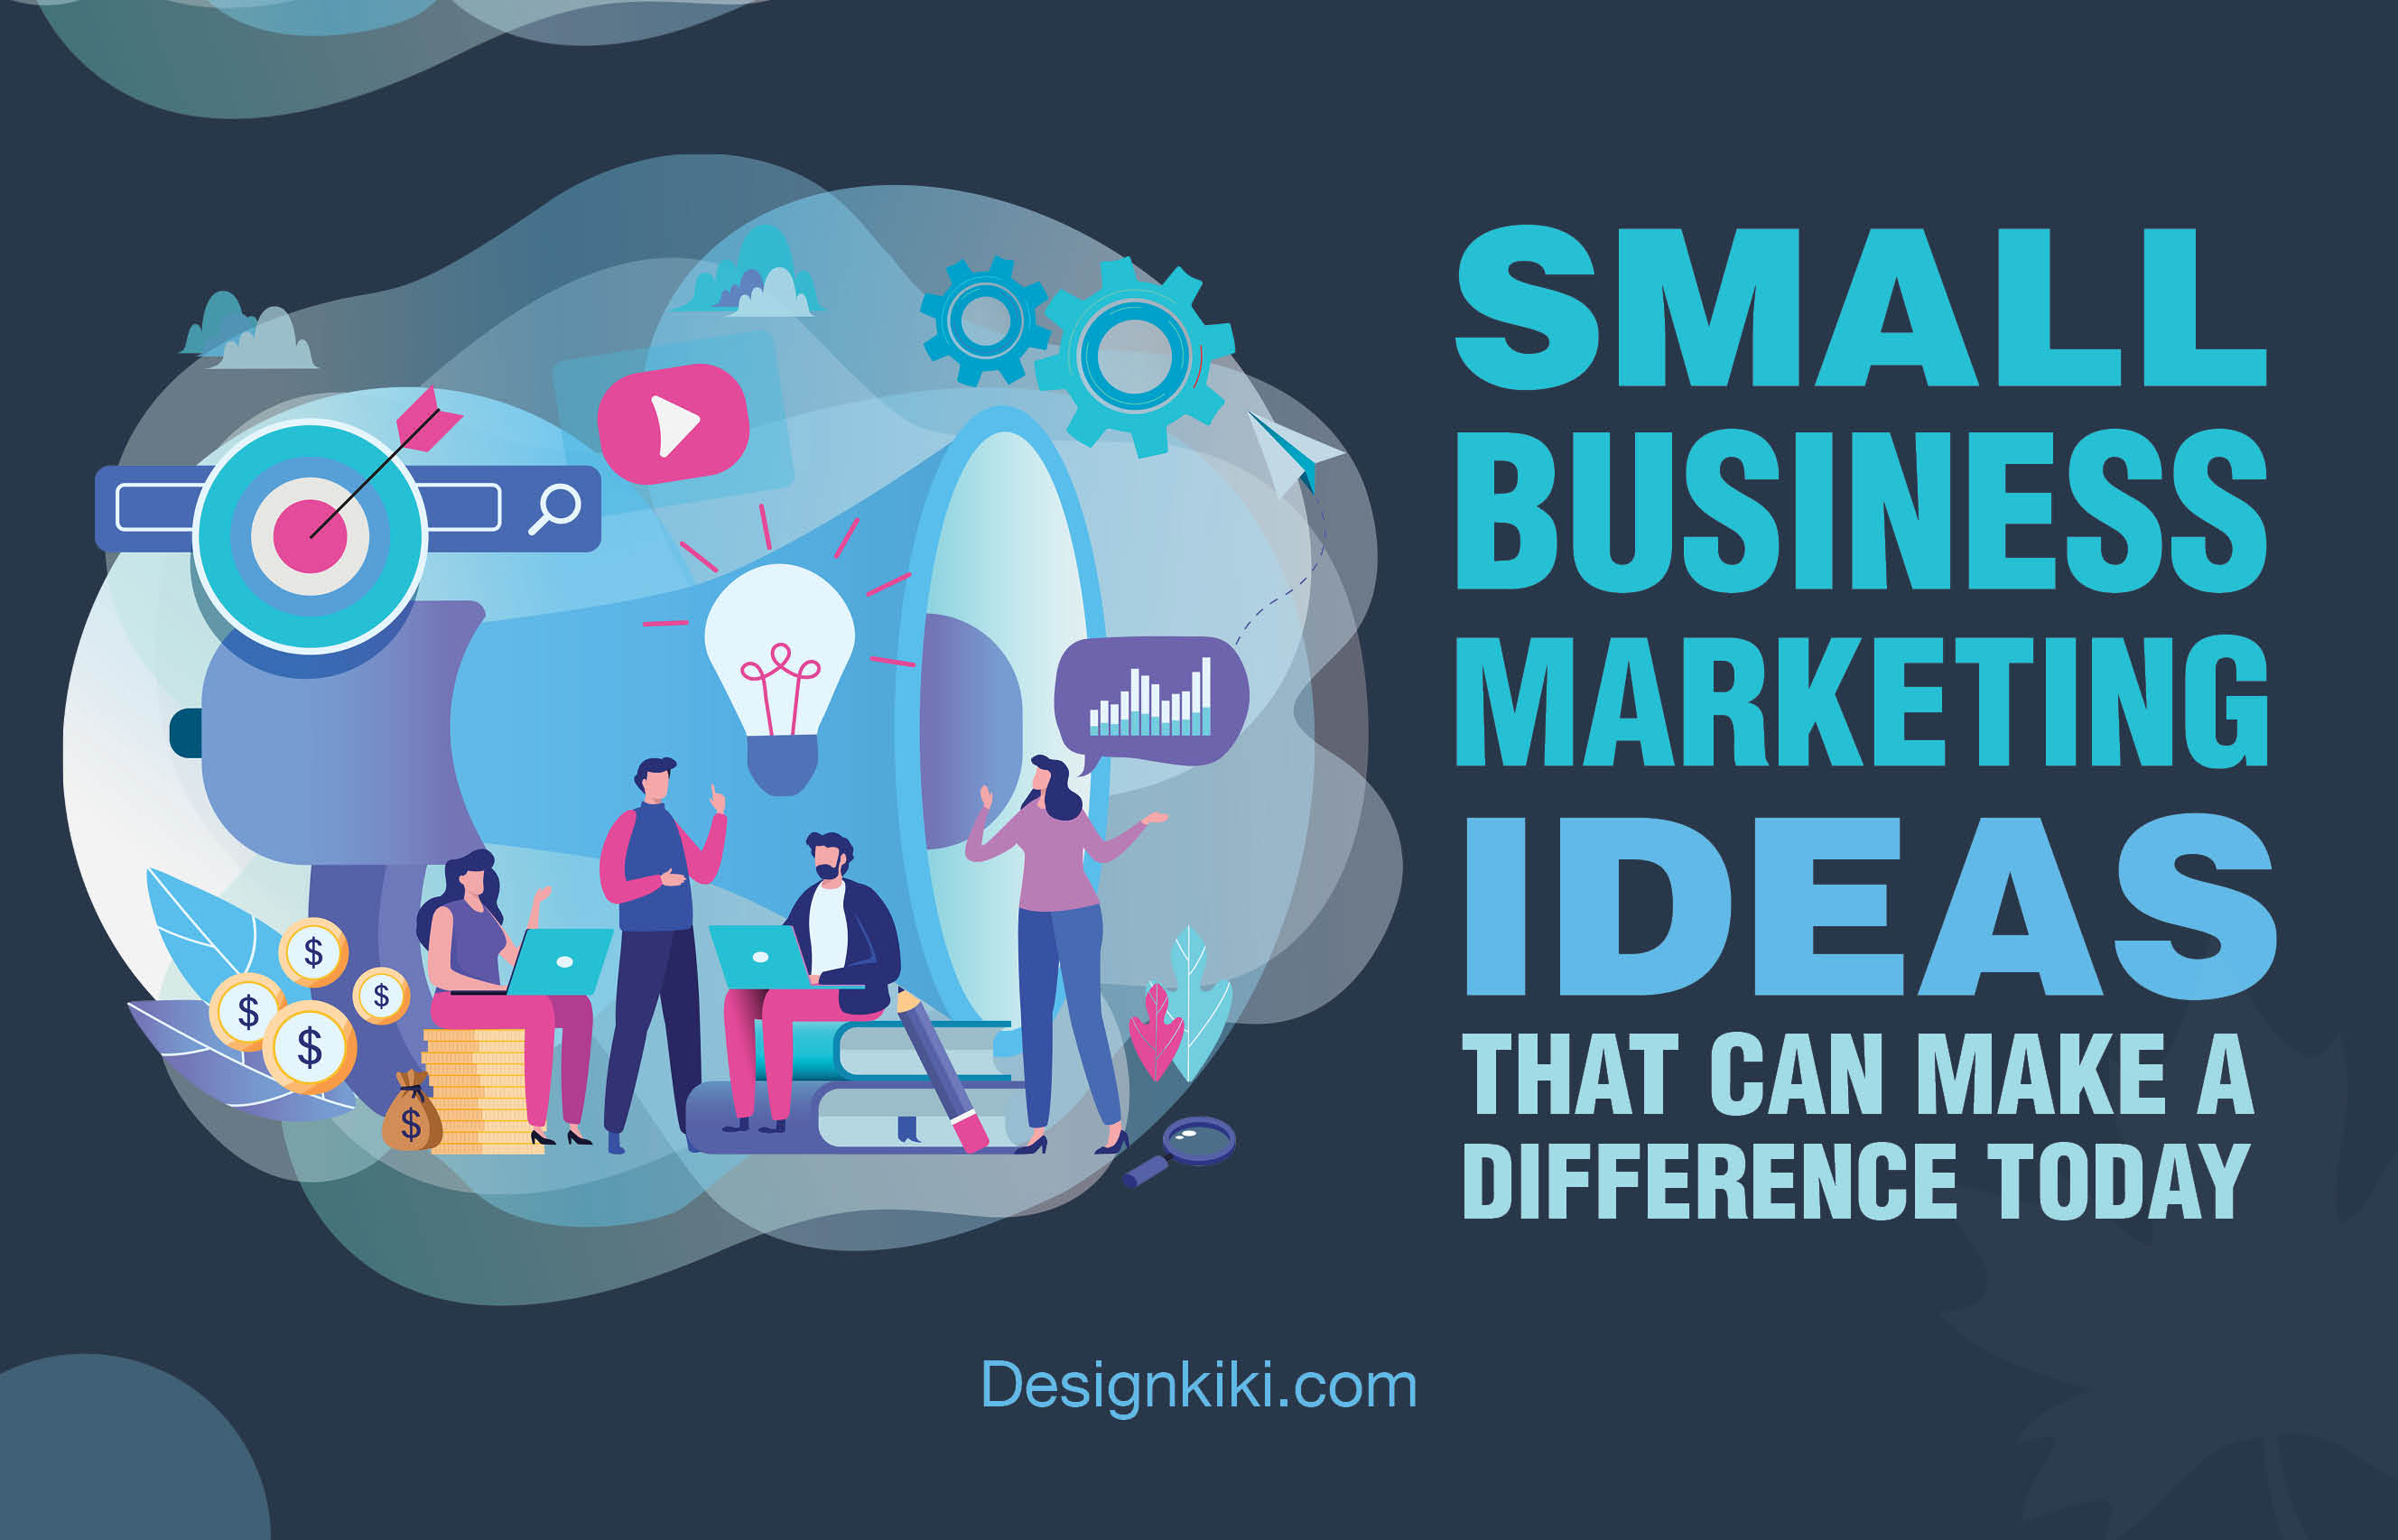 Small-Business-Marketing-Ideas-That-Can-Make-A-Difference-Today